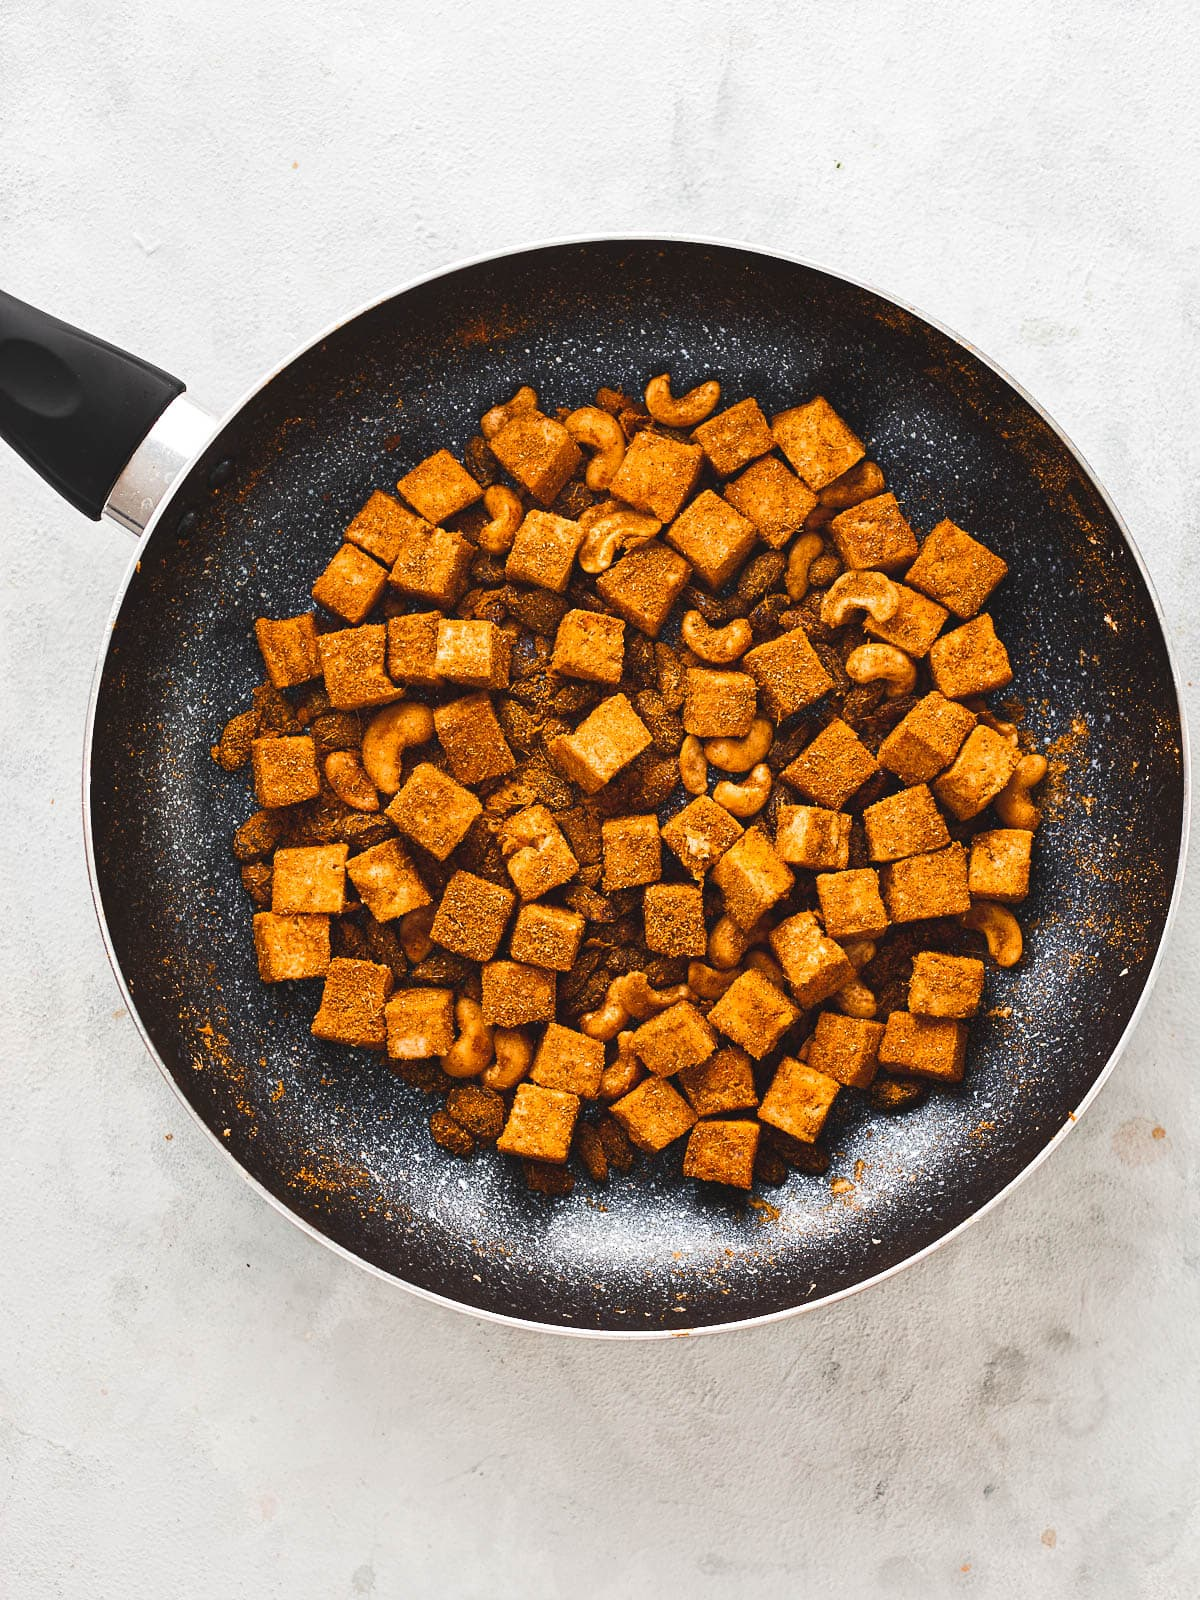 Spices stirred around and toasted with the tofu, cashews and raisins